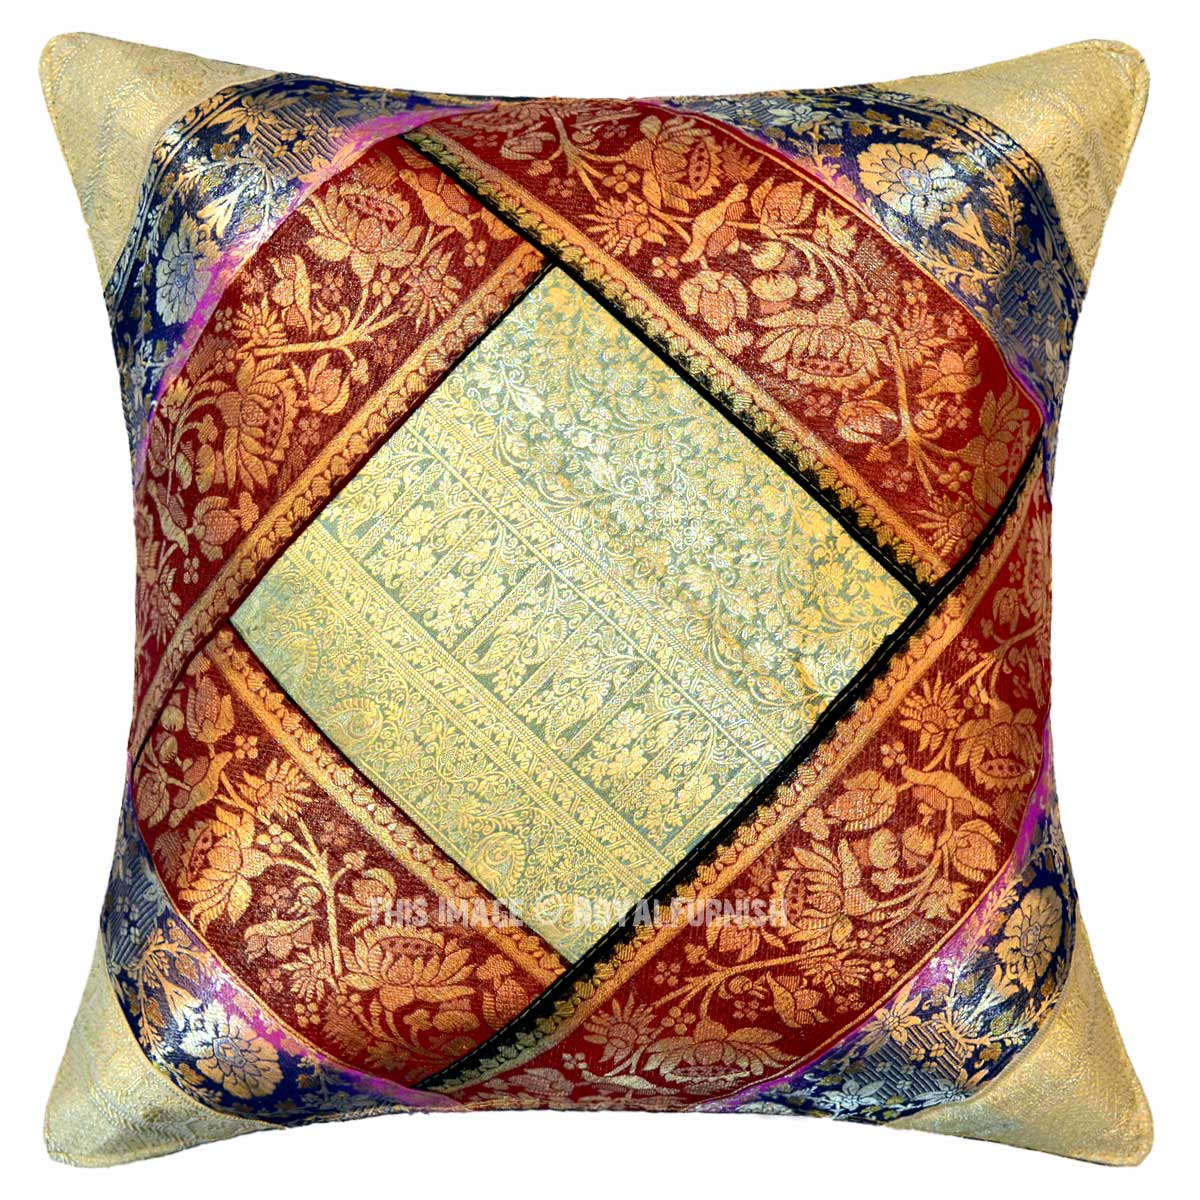 Multi One Of A Kind India Old Sari Made Throw Pillow Cover